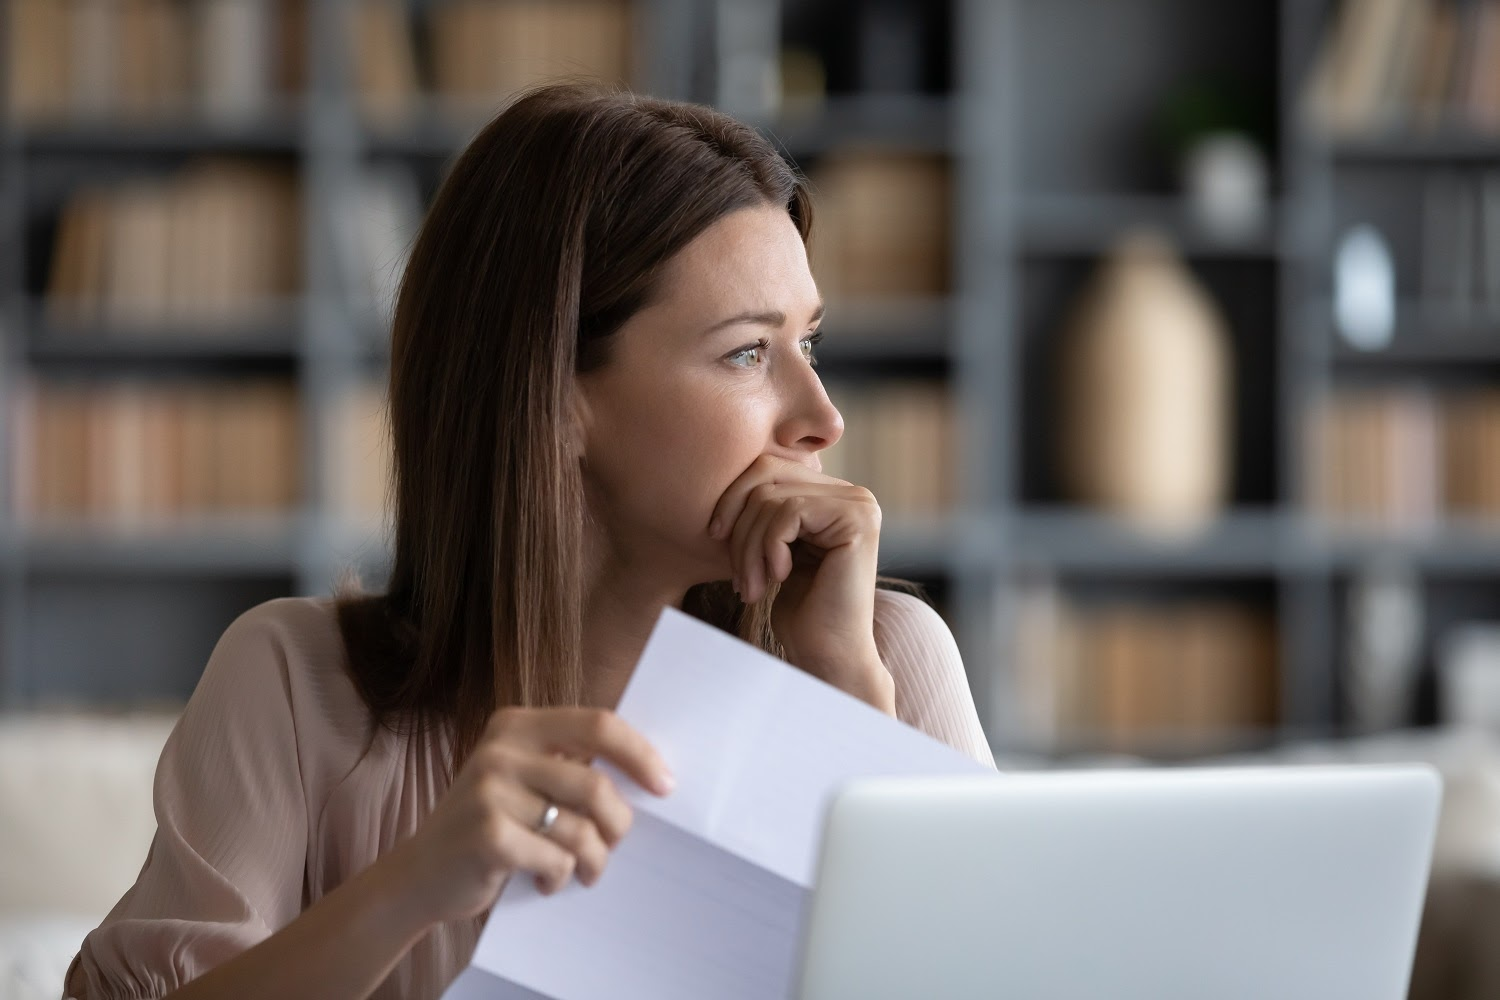 What is better bankruptcy or debt consolidation: A woman looks worried and holds a bill in her hand